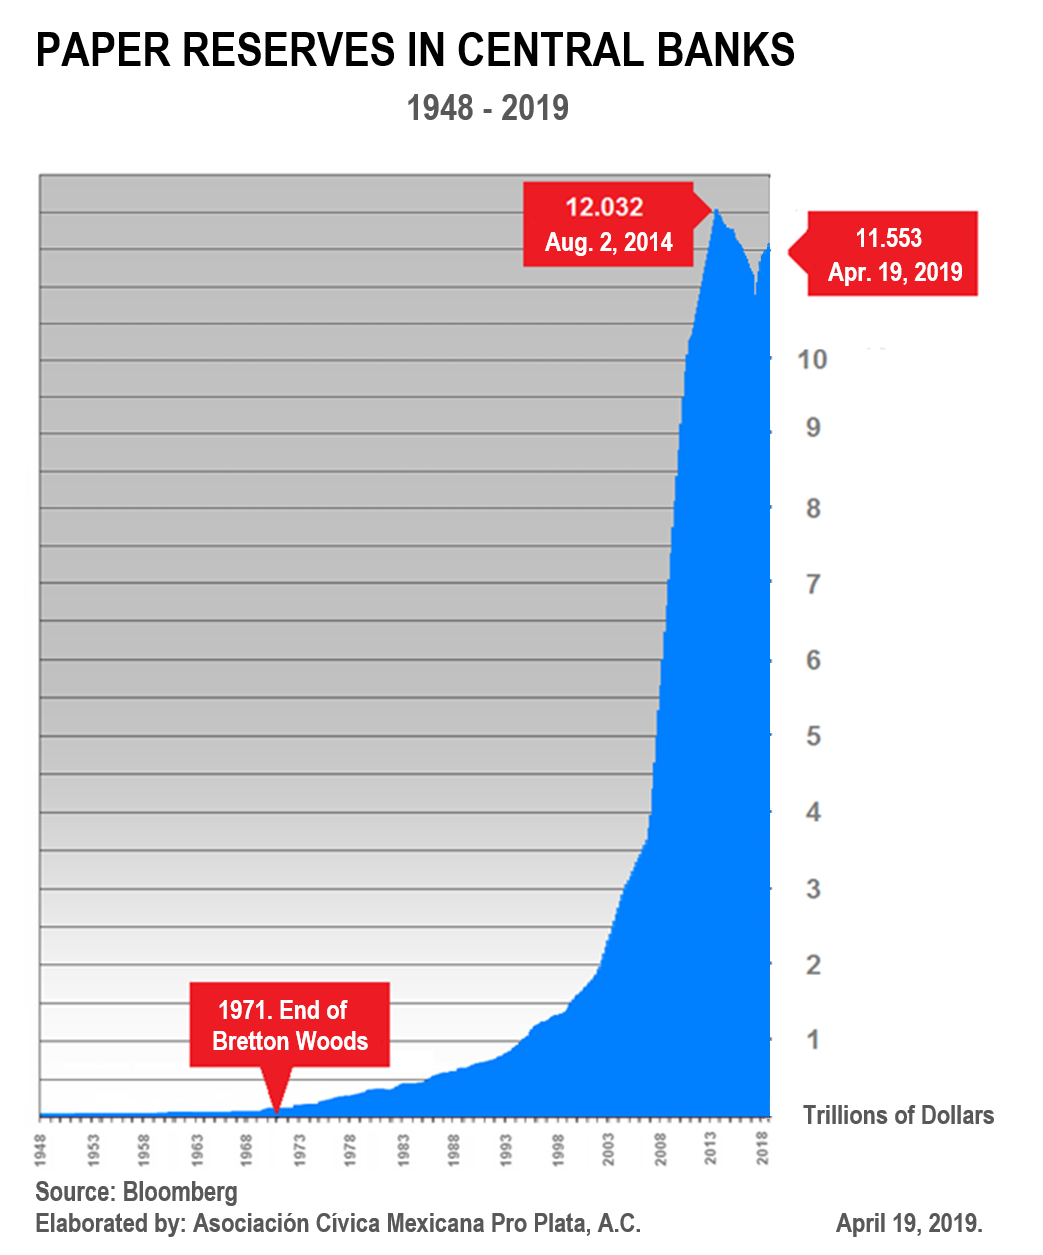 Gold Prices - World's Monetary Reserves and the End of     - Gold Prices